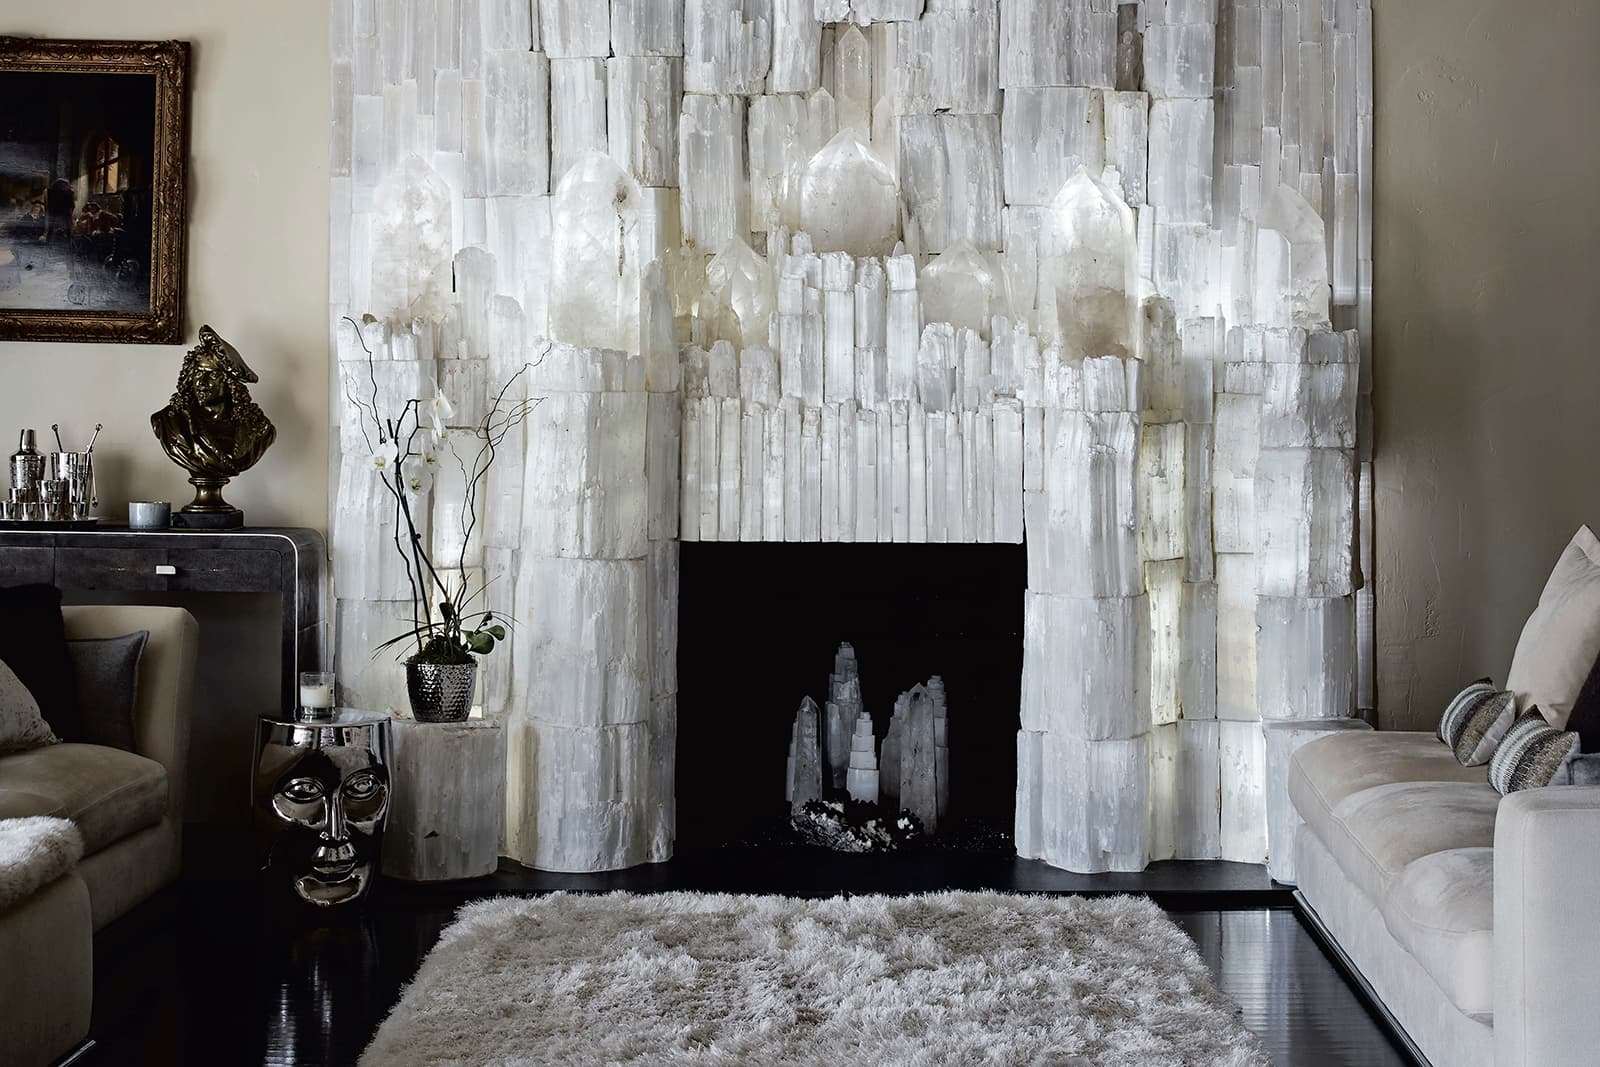 This magnificent selenite fireplace belongs to the legendary jewellery designer Robert Procop (Jon Day © 2020)